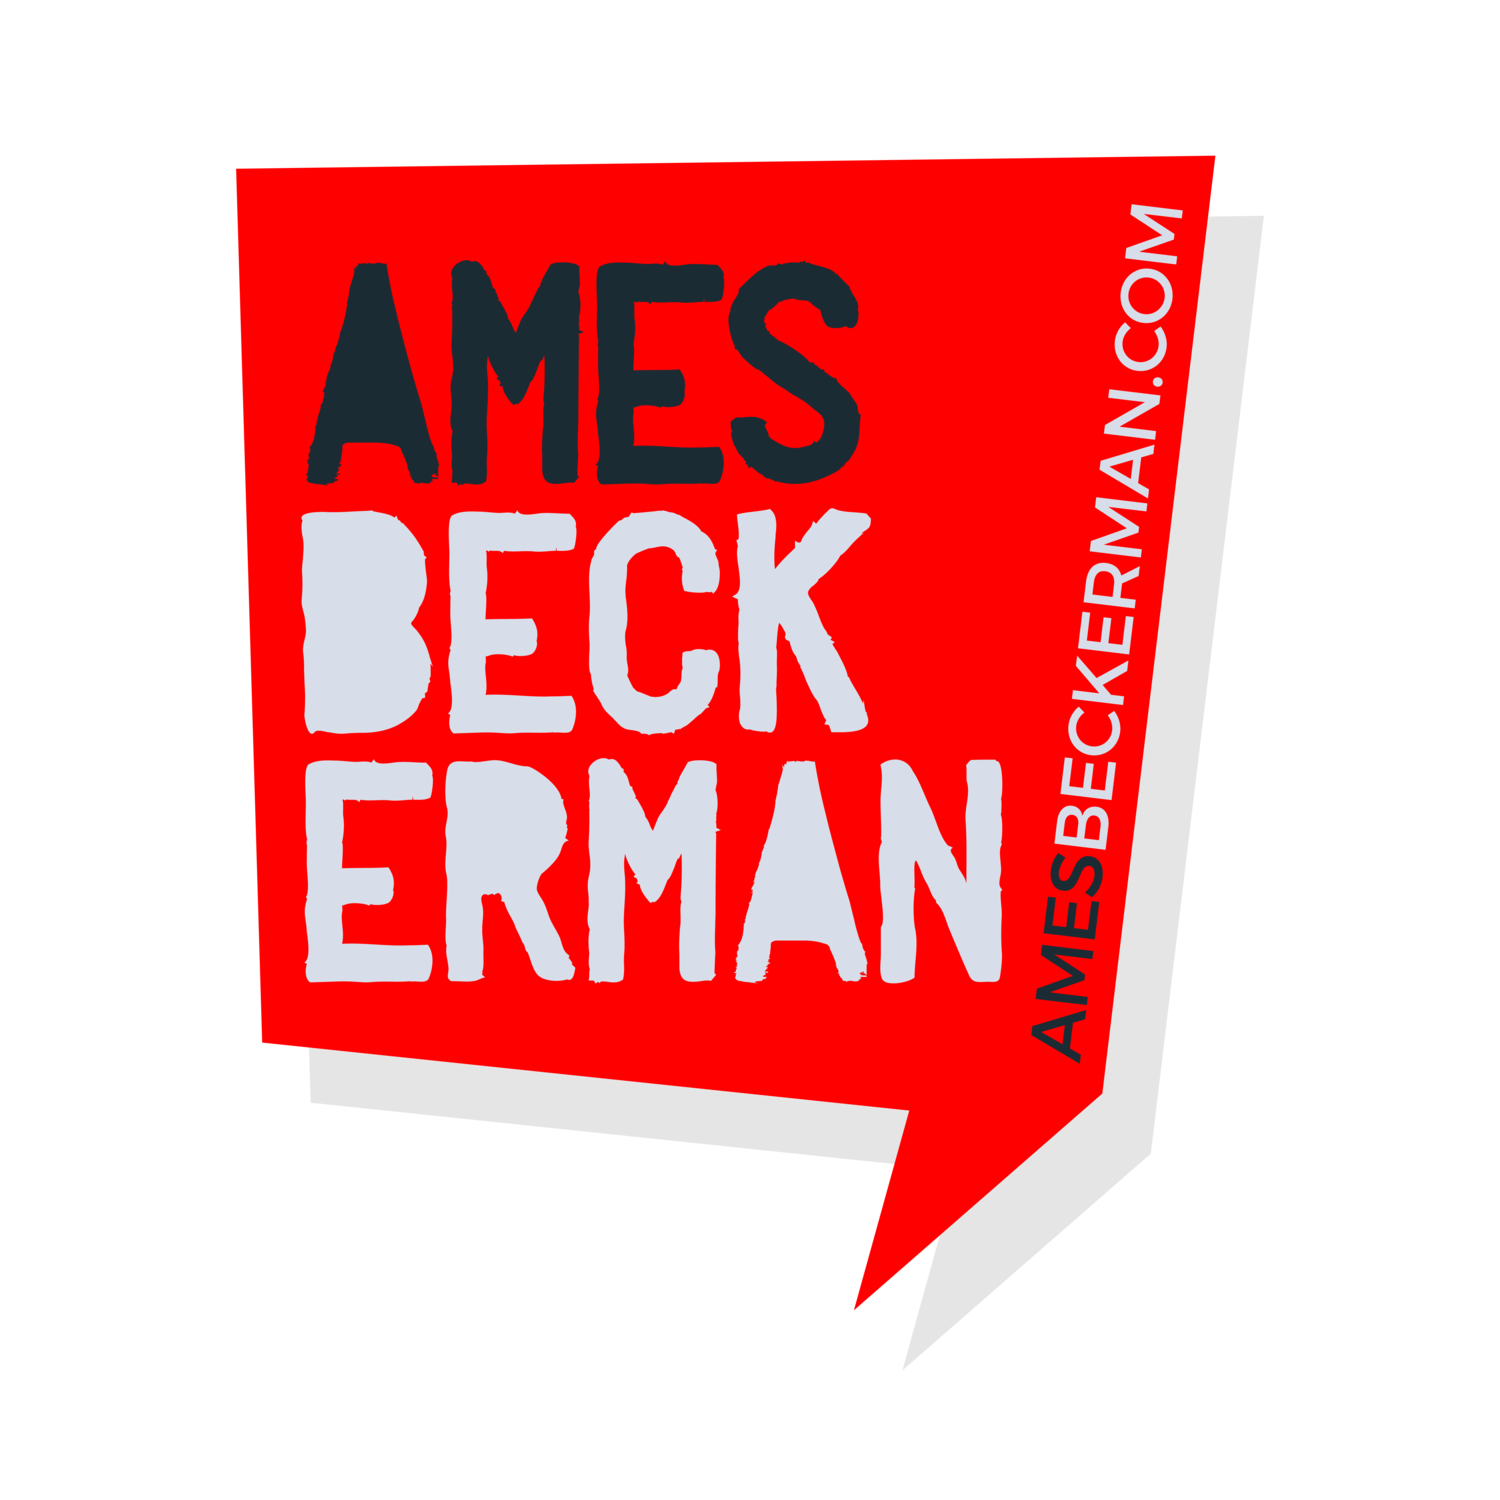 Ames Beckerman